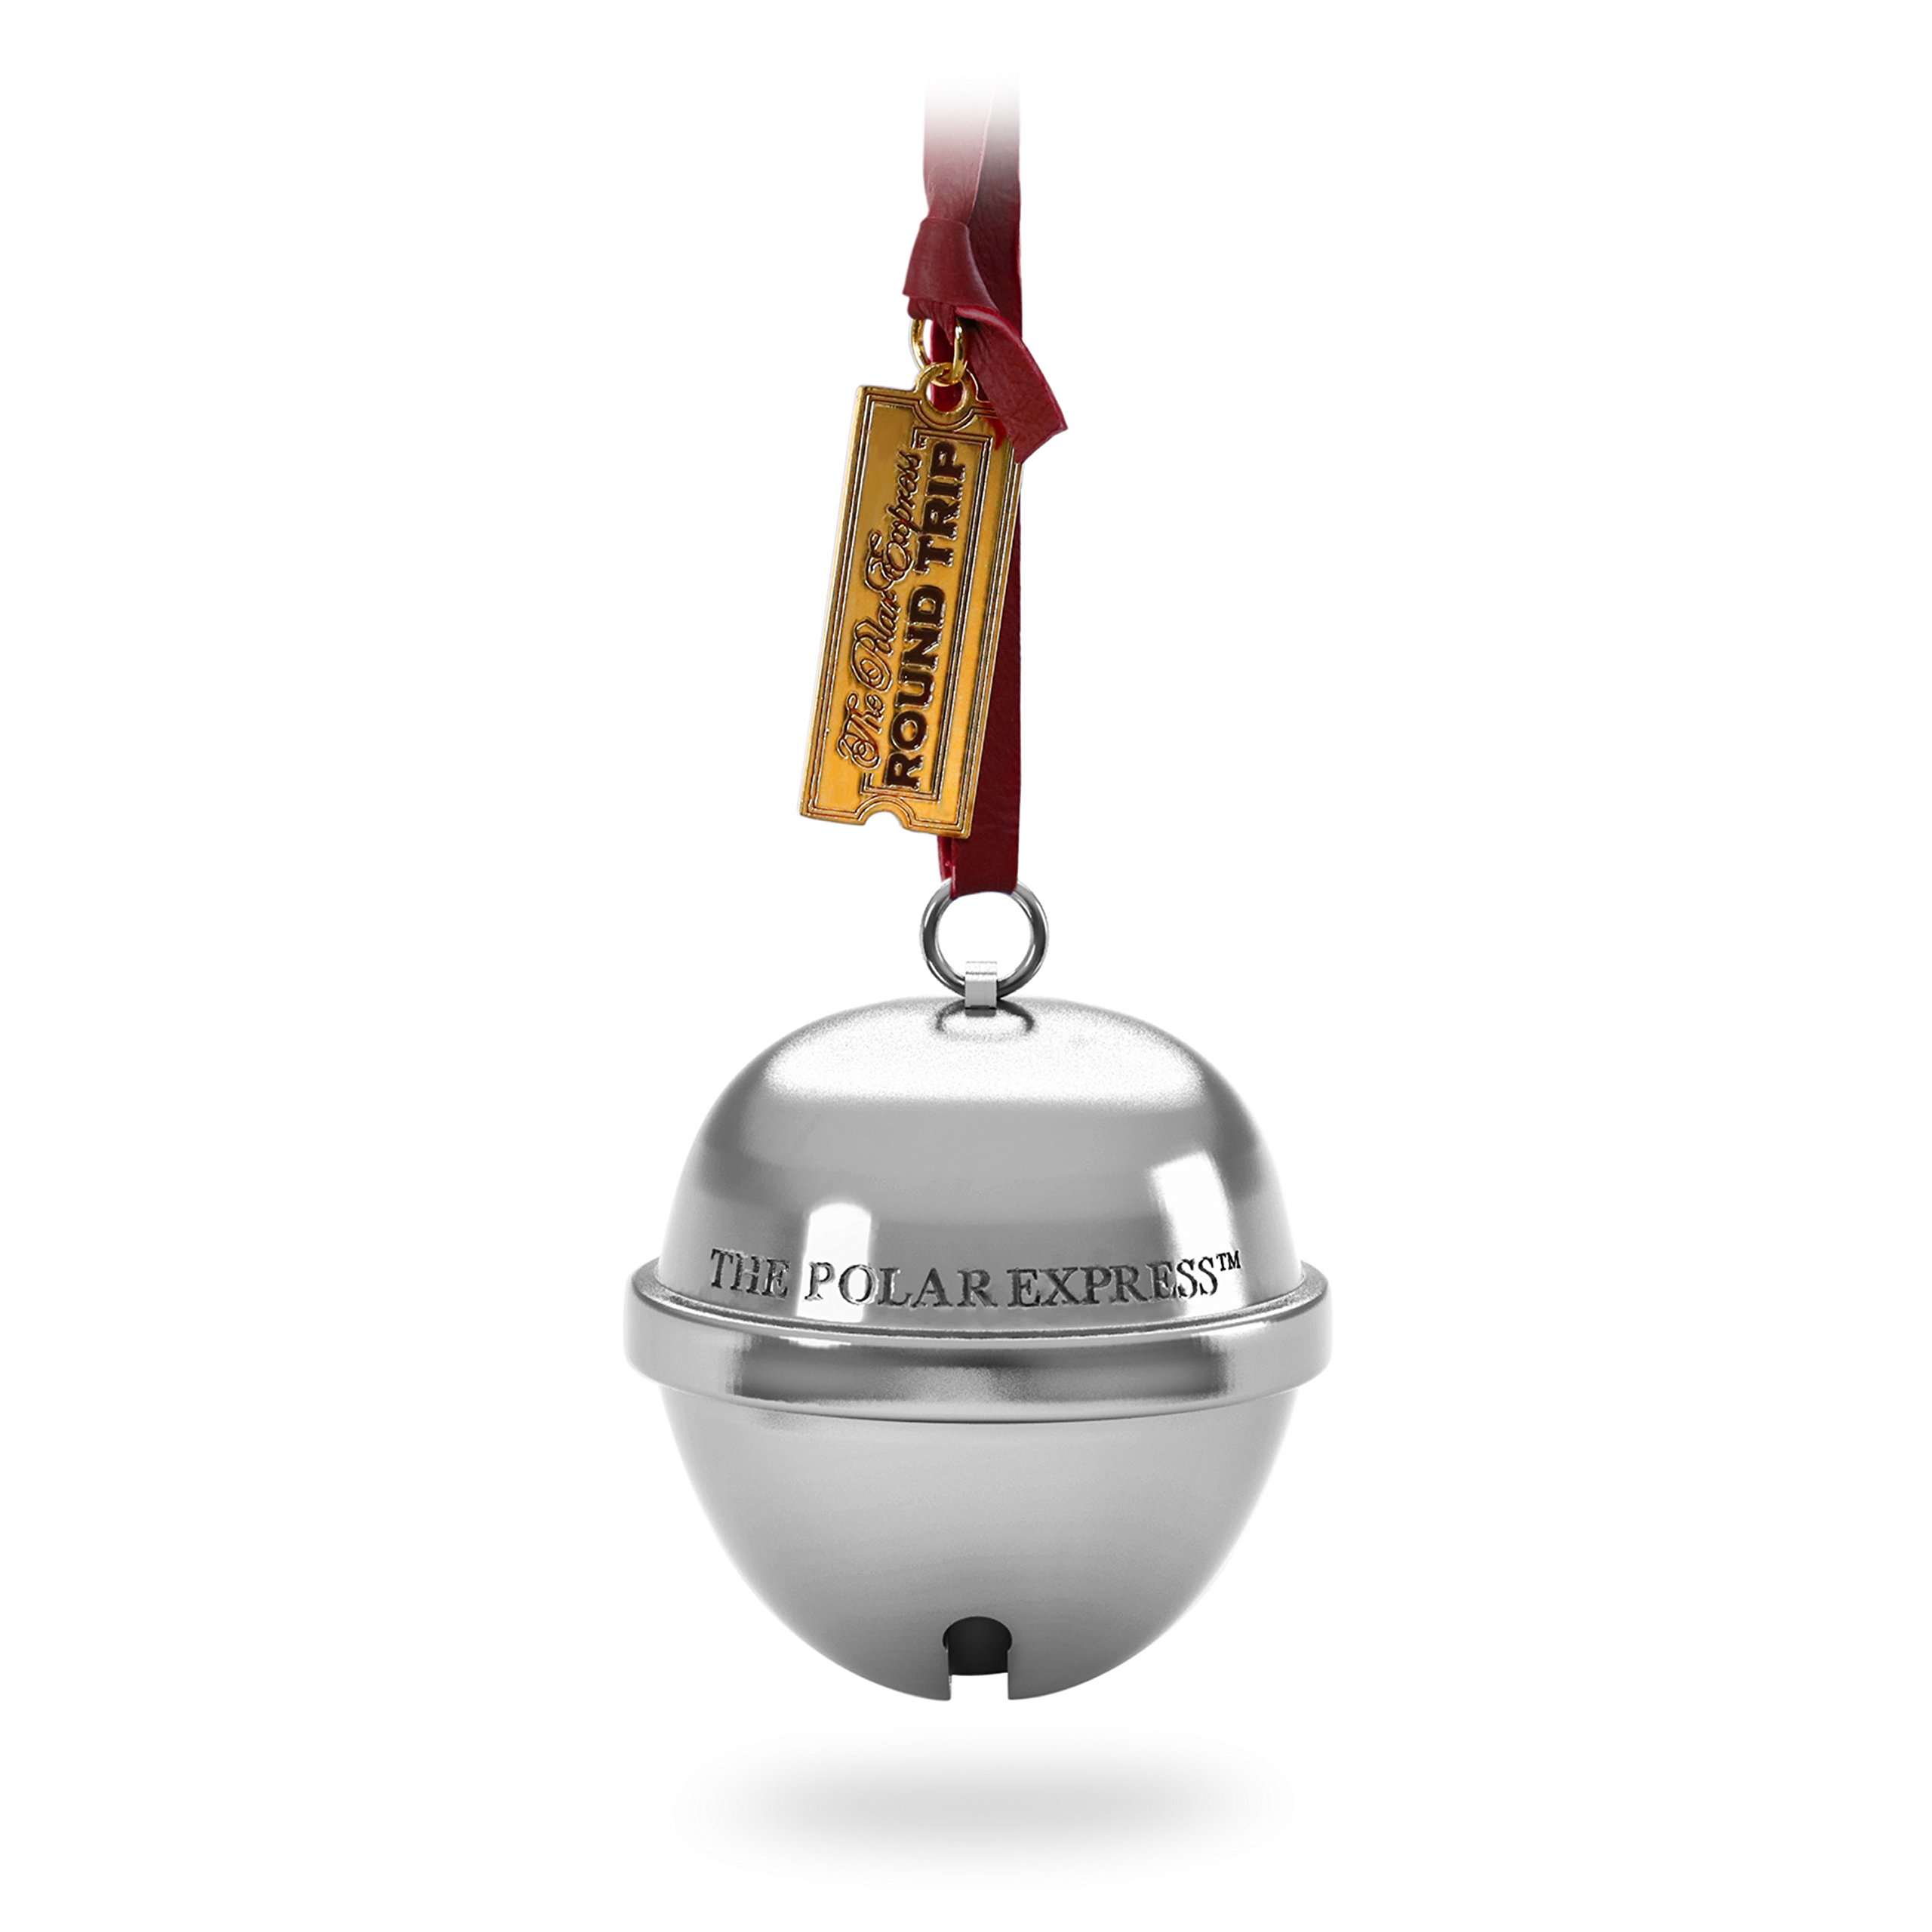 Hallmark Christmas Ornament Keepsake 2018 Year Dated, the Polar Express Bell the First Gift Sound